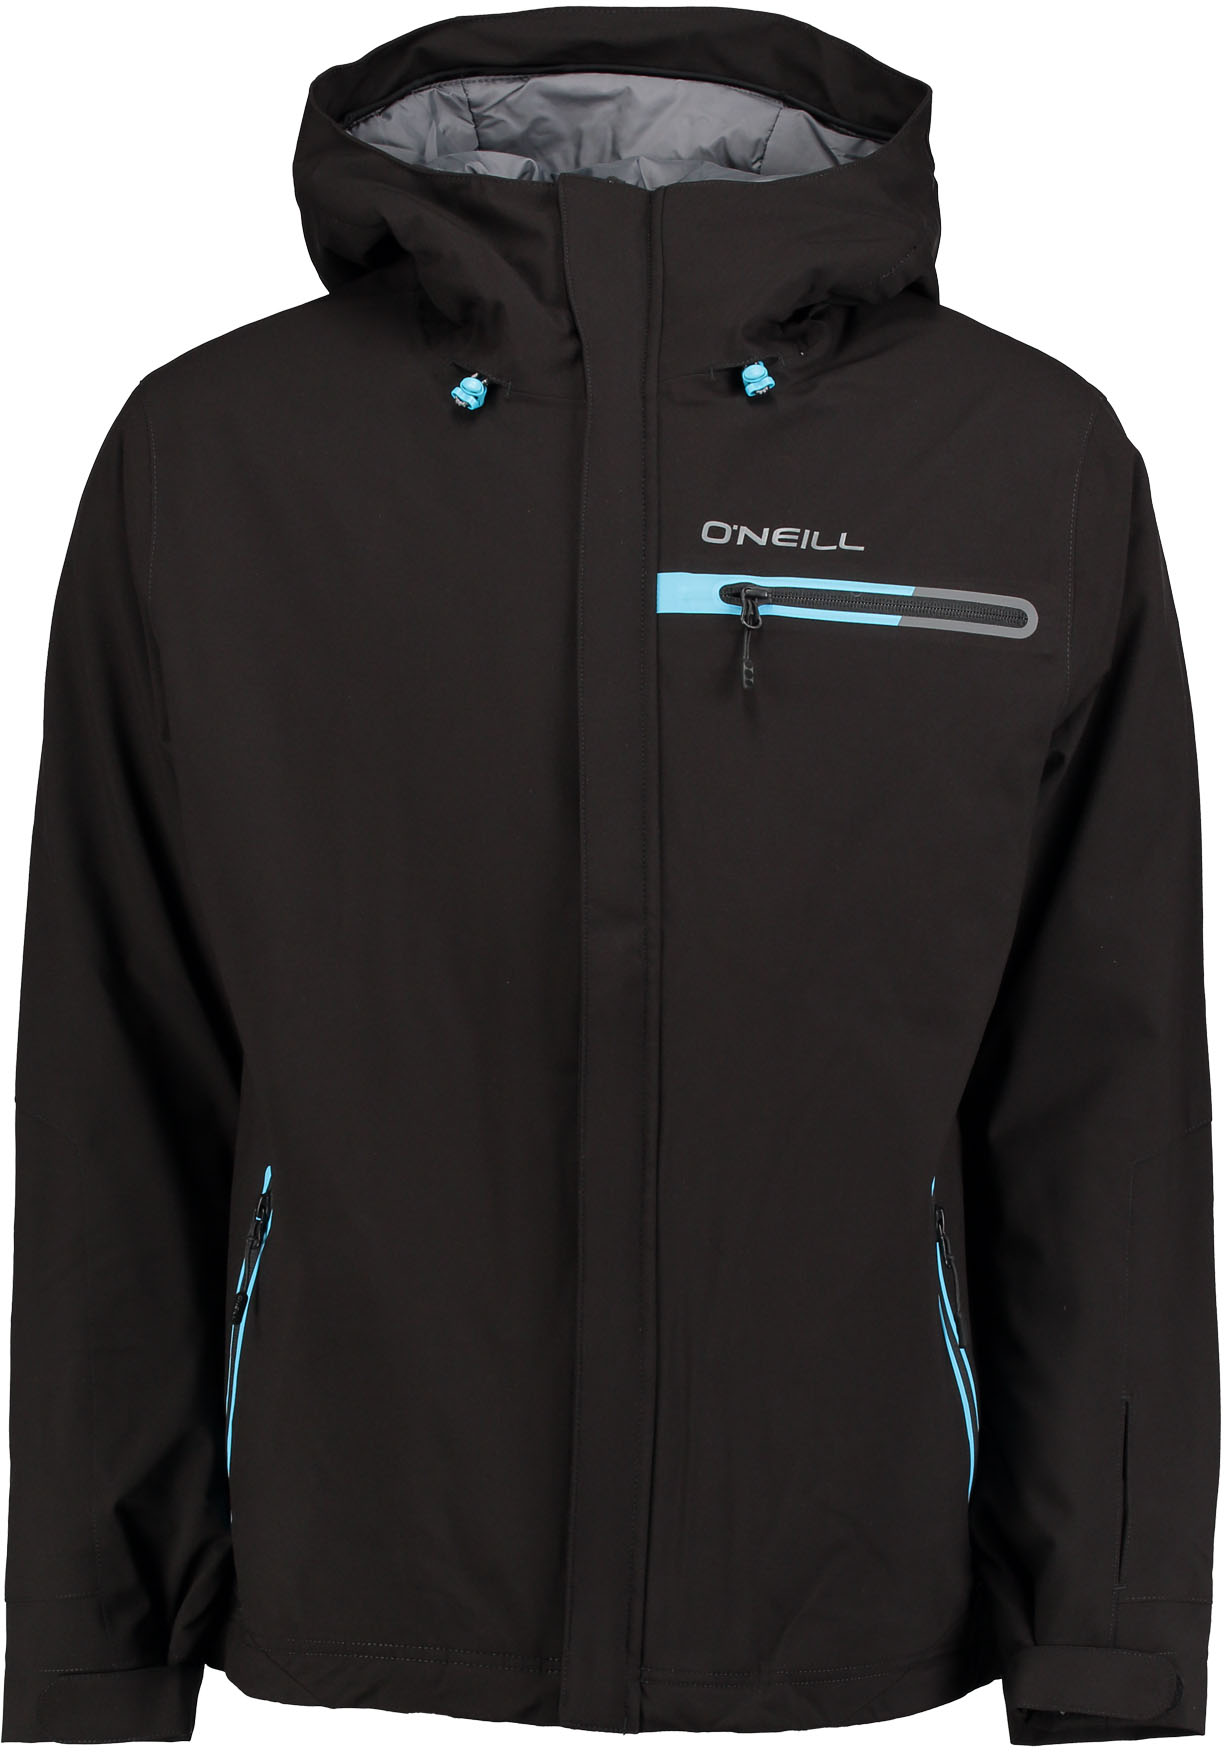 image oneill-compass-snowboard-jkt-black-out-16-jpg